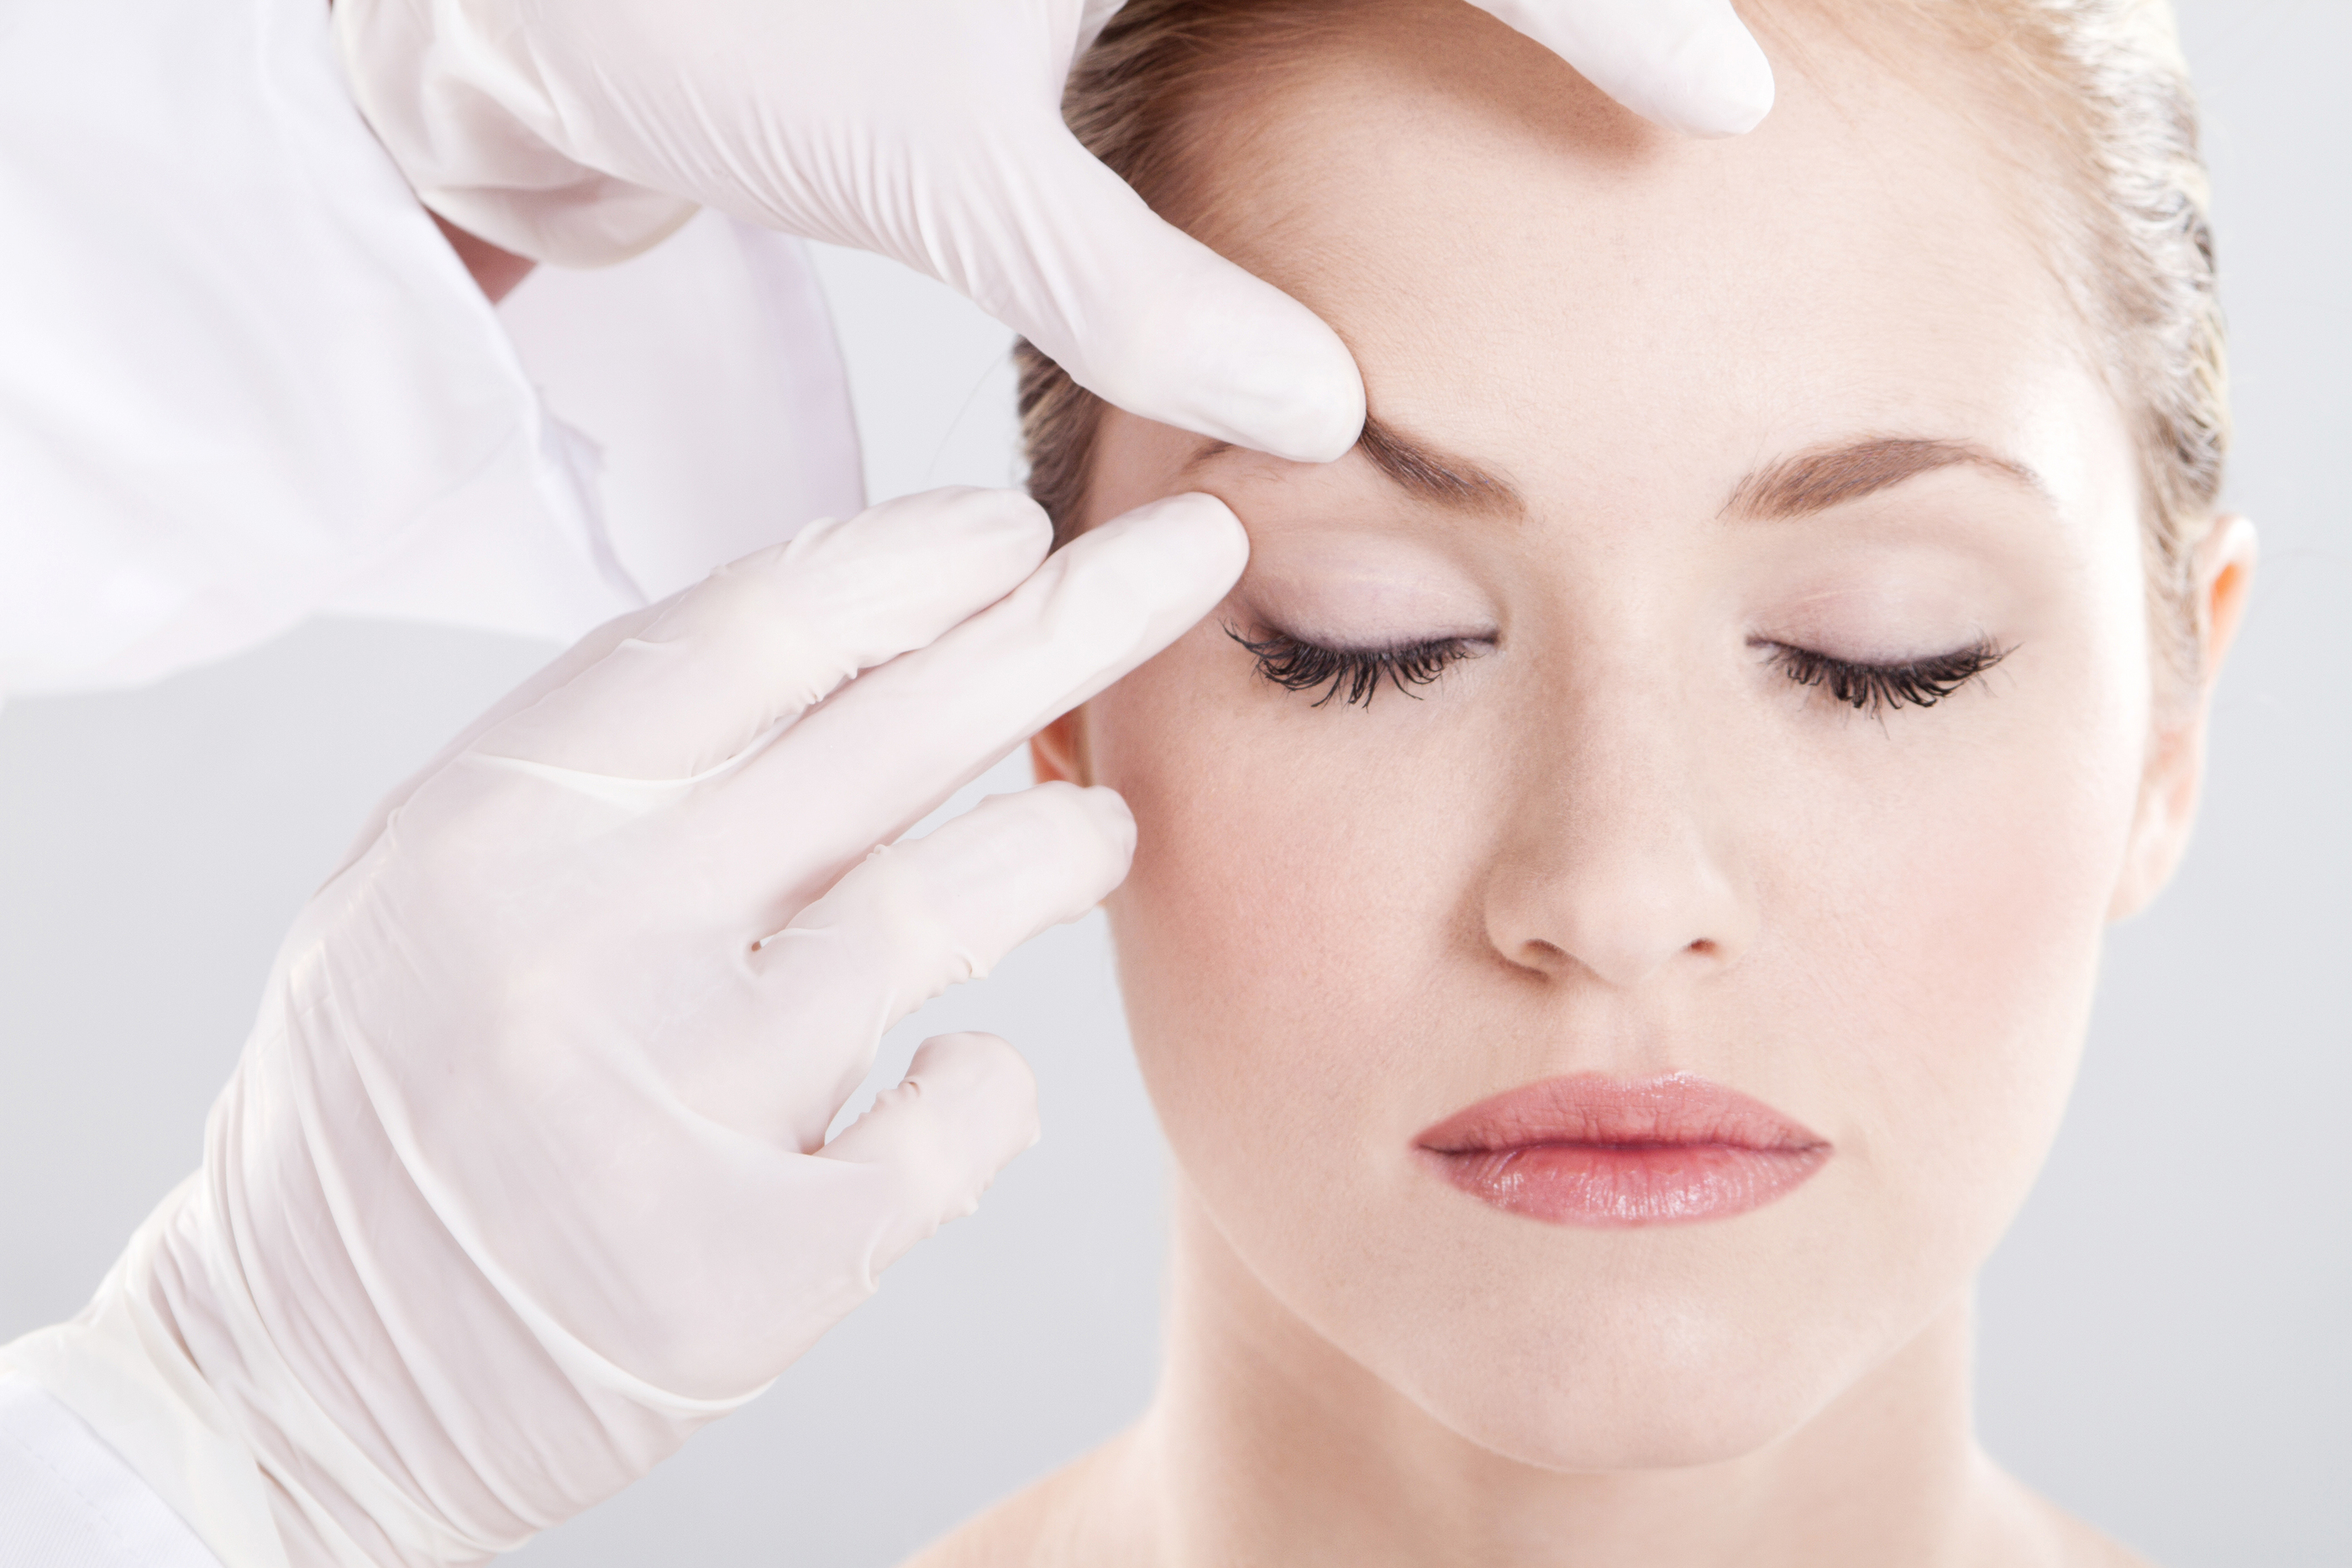 Top 5 Misconceptions About Cosmetic Surgery